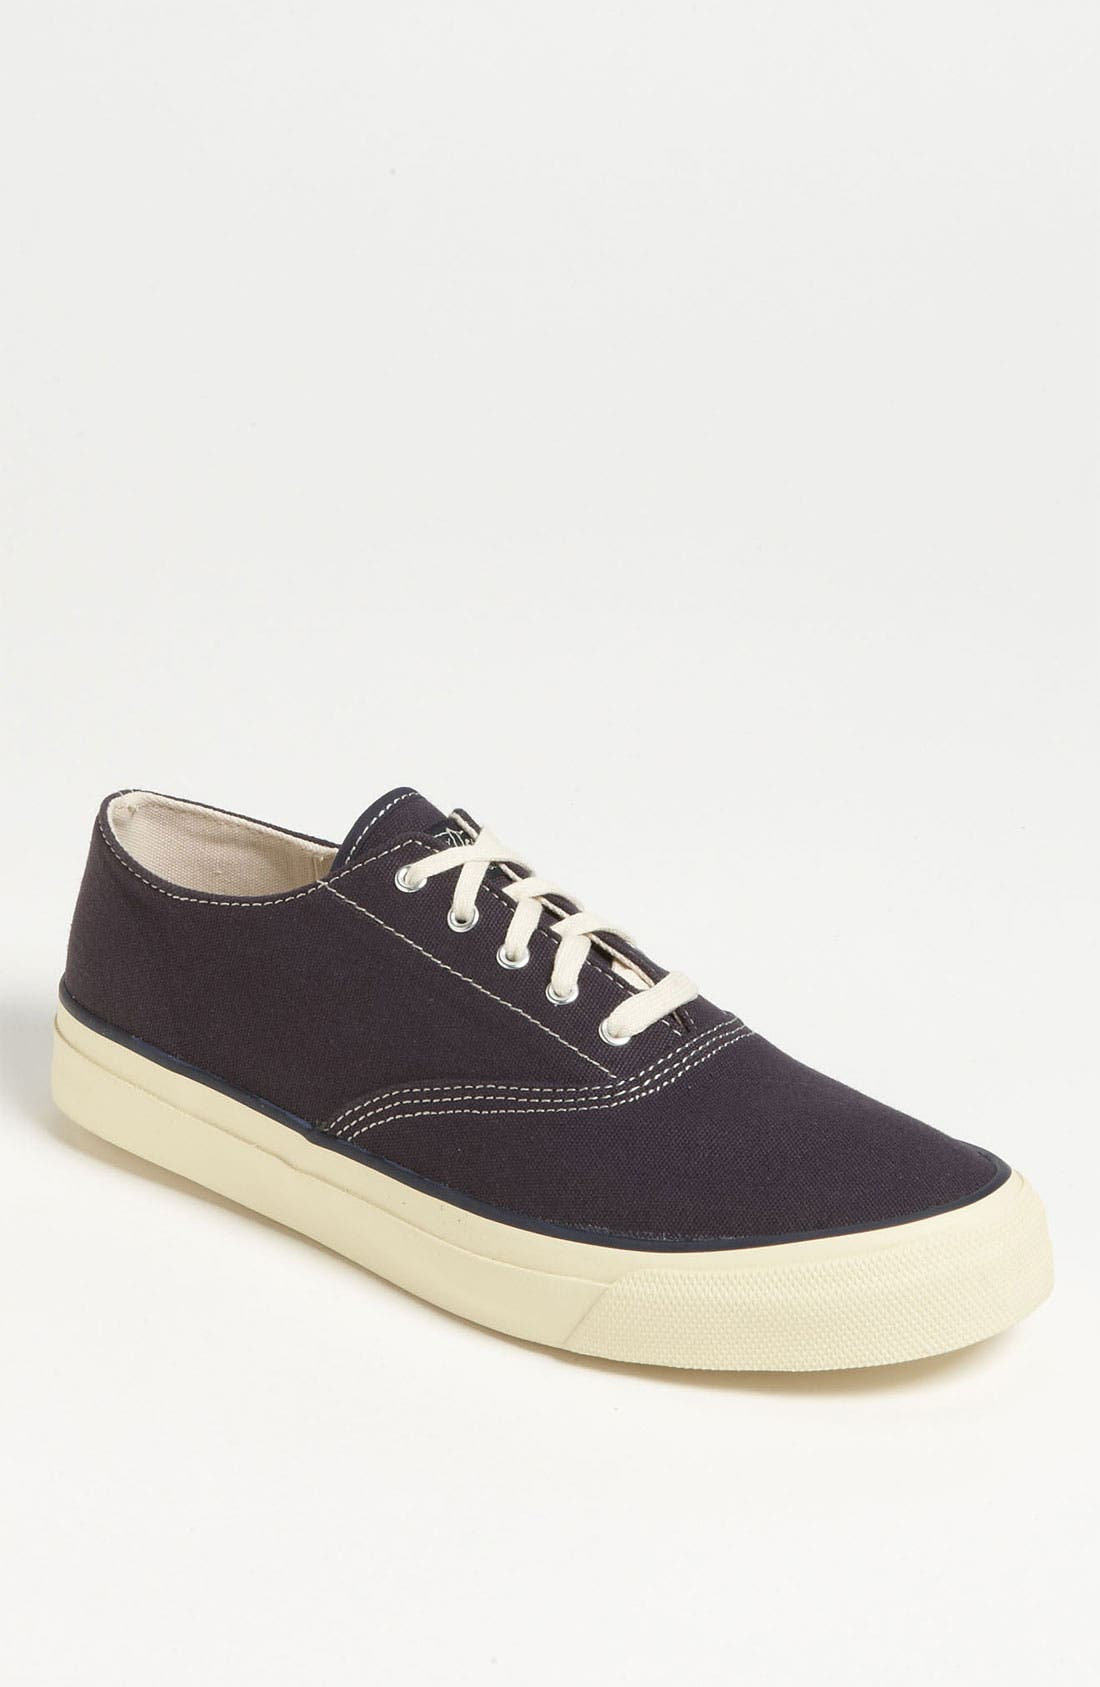 Alternate Image 1 Selected - Sperry Top-Sider® 'CVO' Sneaker